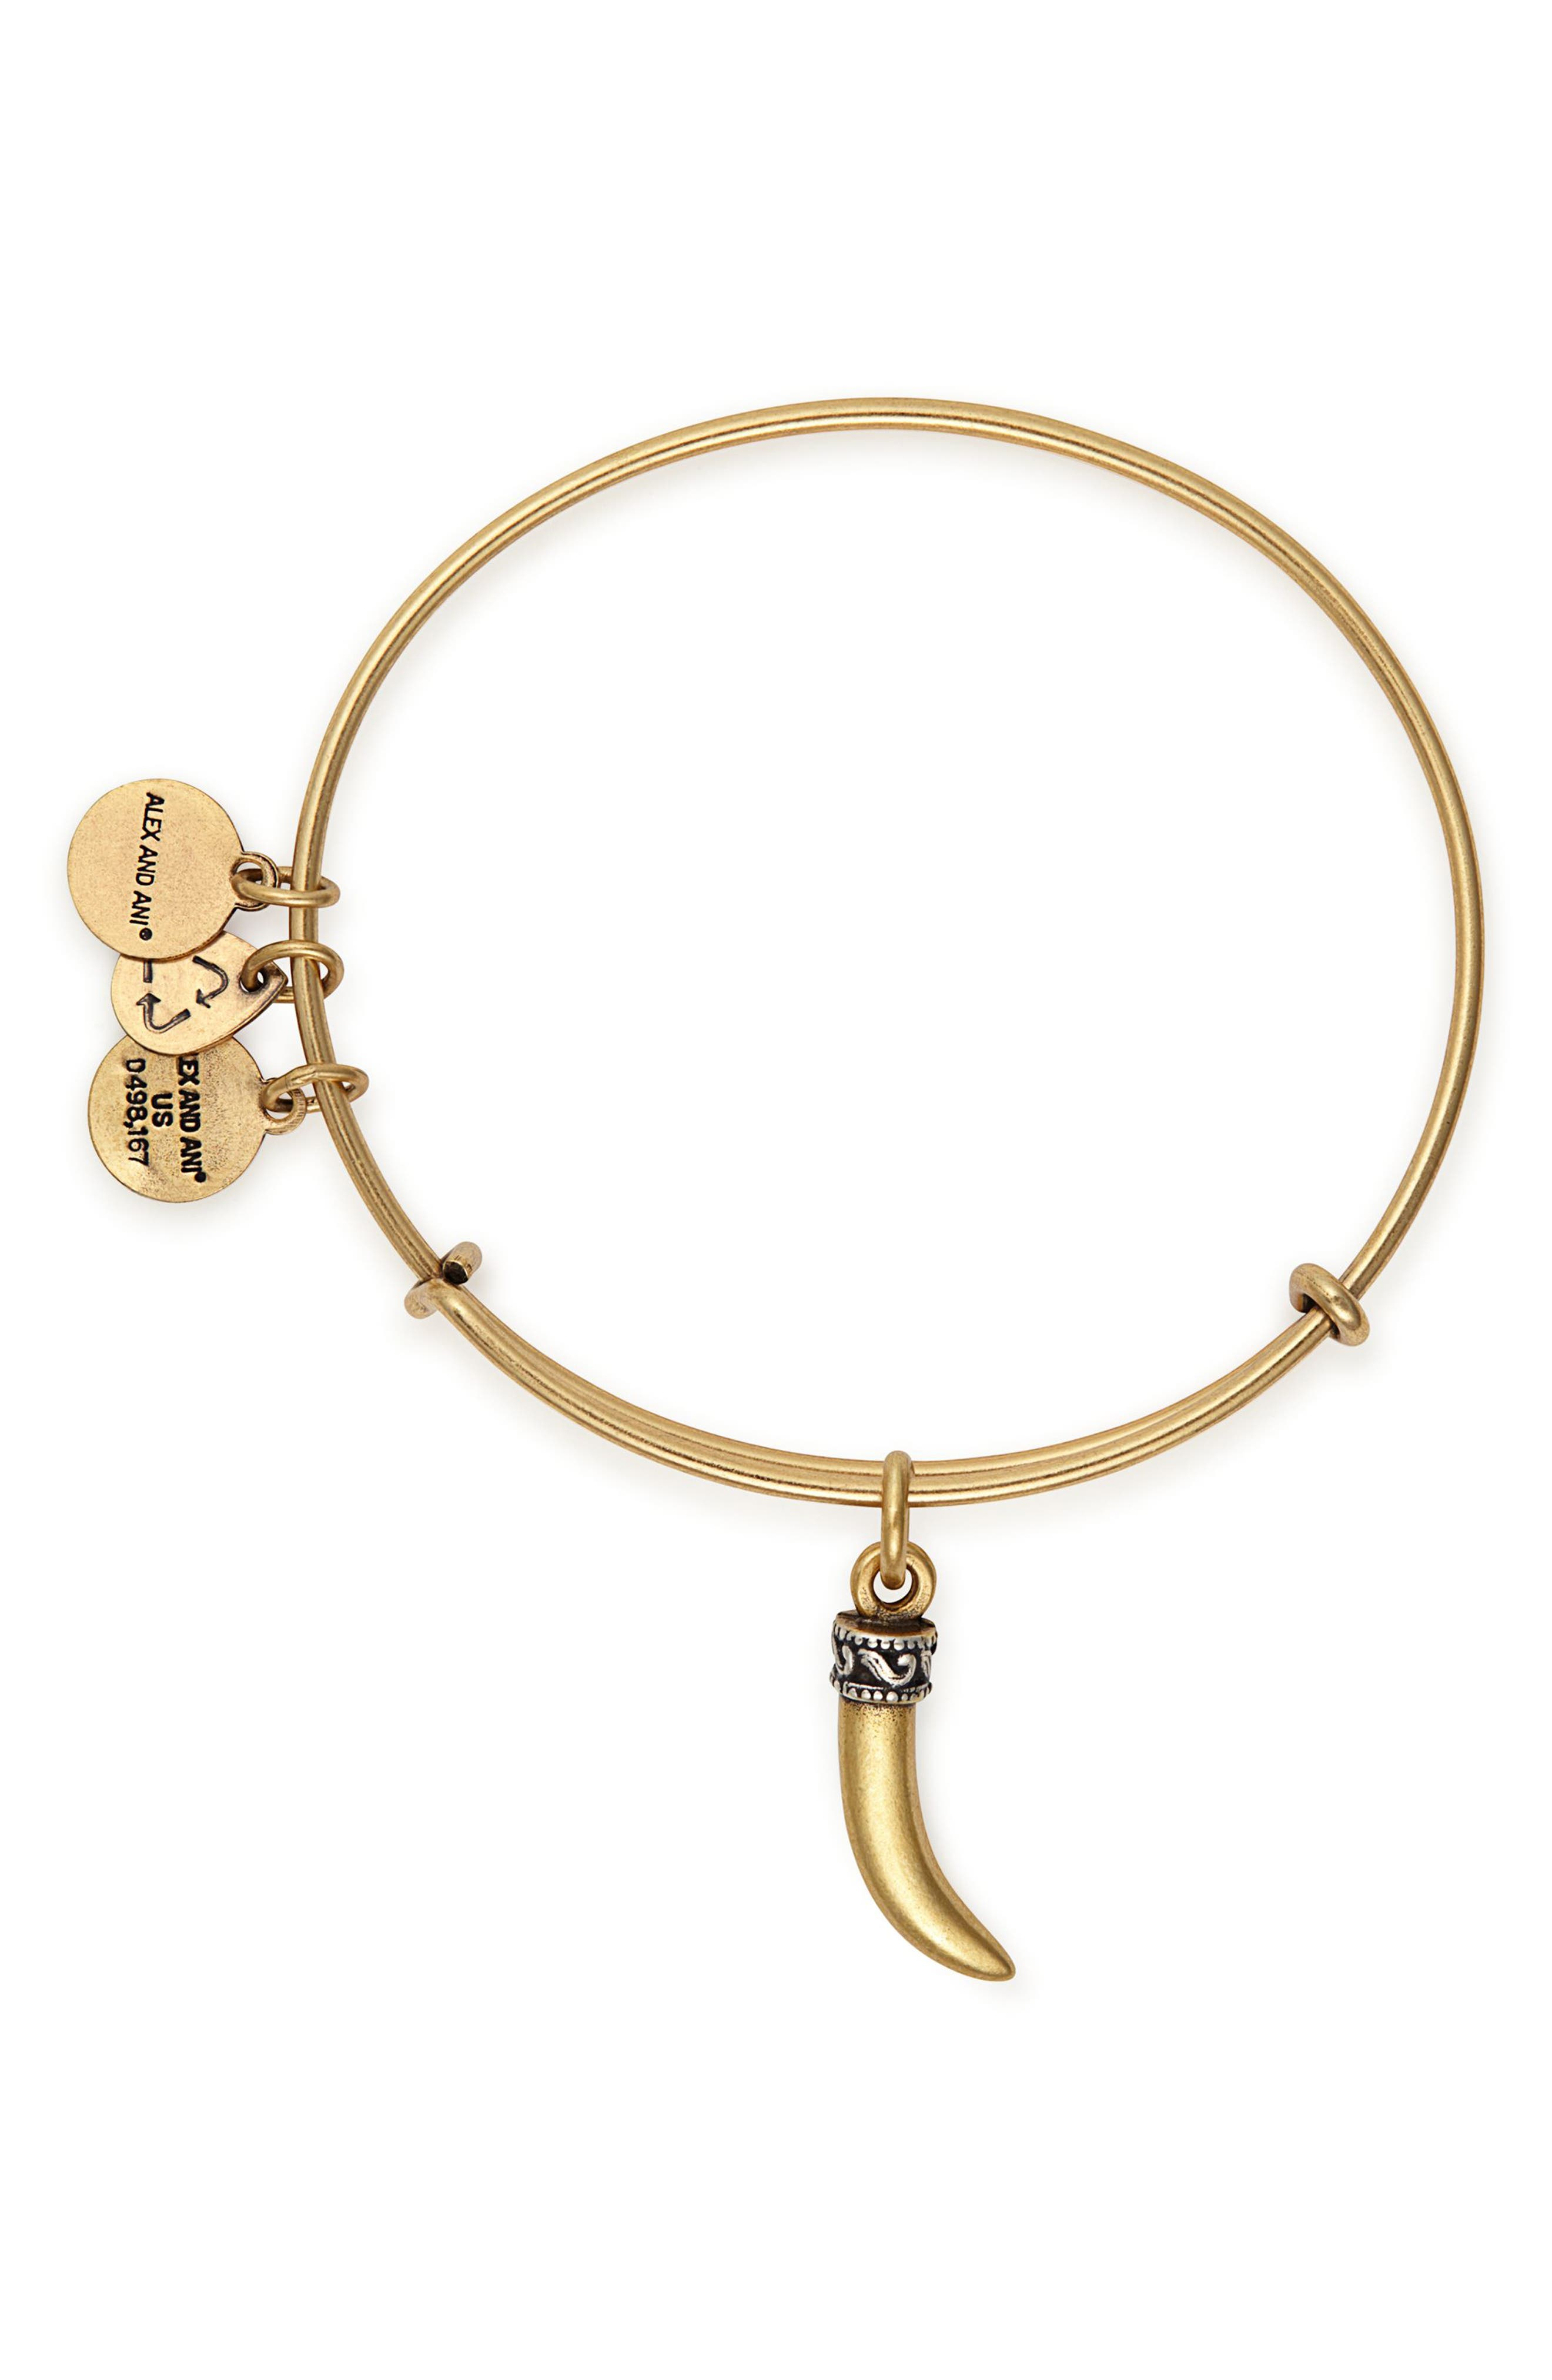 Horn Charm Adjustable Bangle,                             Alternate thumbnail 2, color,